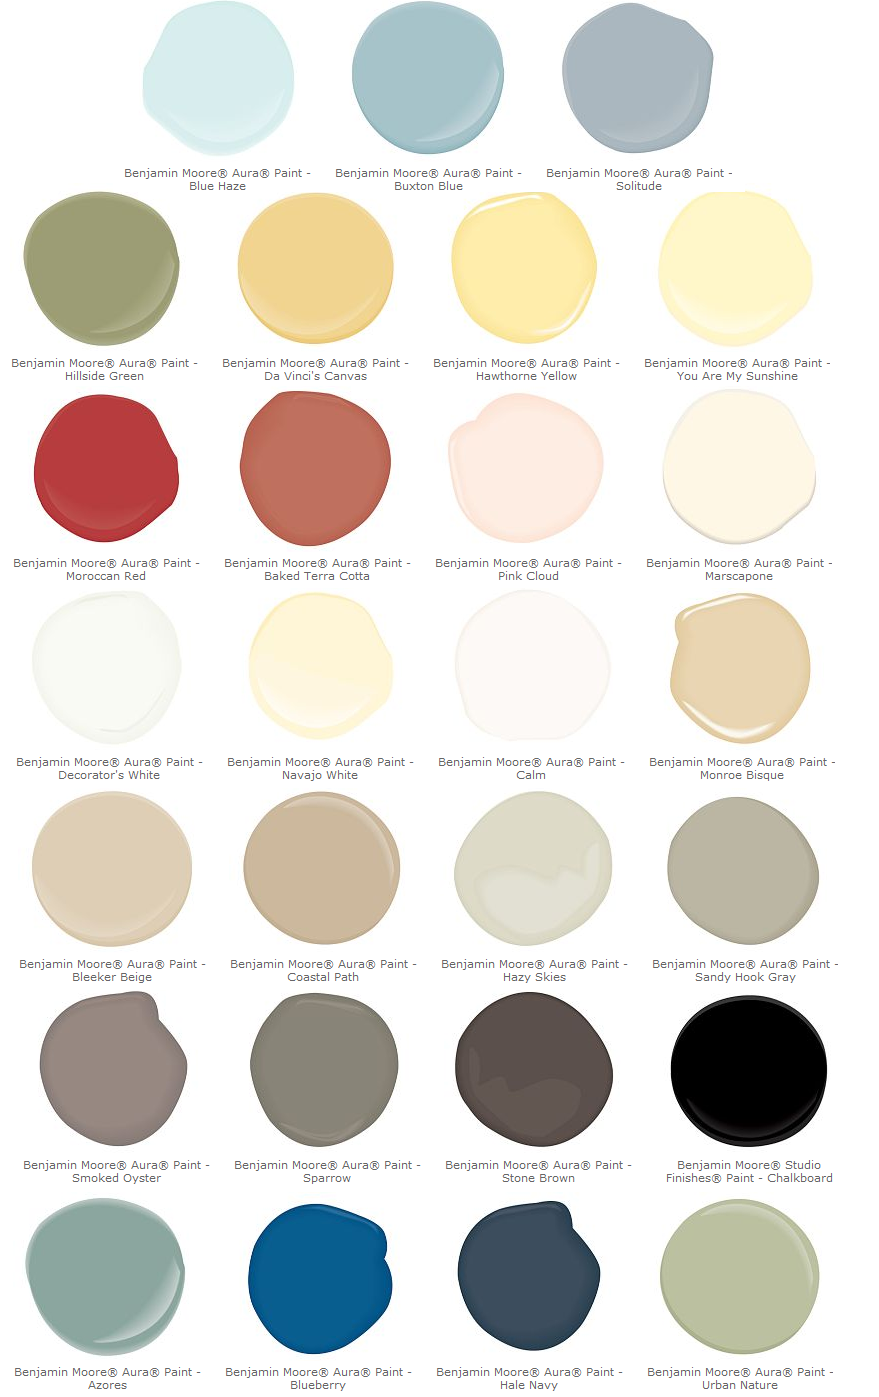 701c244da5b34c6d furthermore Master Bedroom Wall Paint Colors 2017 likewise 2017 Paint Color Forecasts And Trends besides Impressive Wall Cabi s Homesteads And Bathroom Toilets On Pinterest With Regard To Rustic Bathroom Wall Cabi s Attractive further Benjamin Moore 2016 Color Of The Year Why Most Shouldnt Paint Walls This Color. on 2017 benjamin moore colors